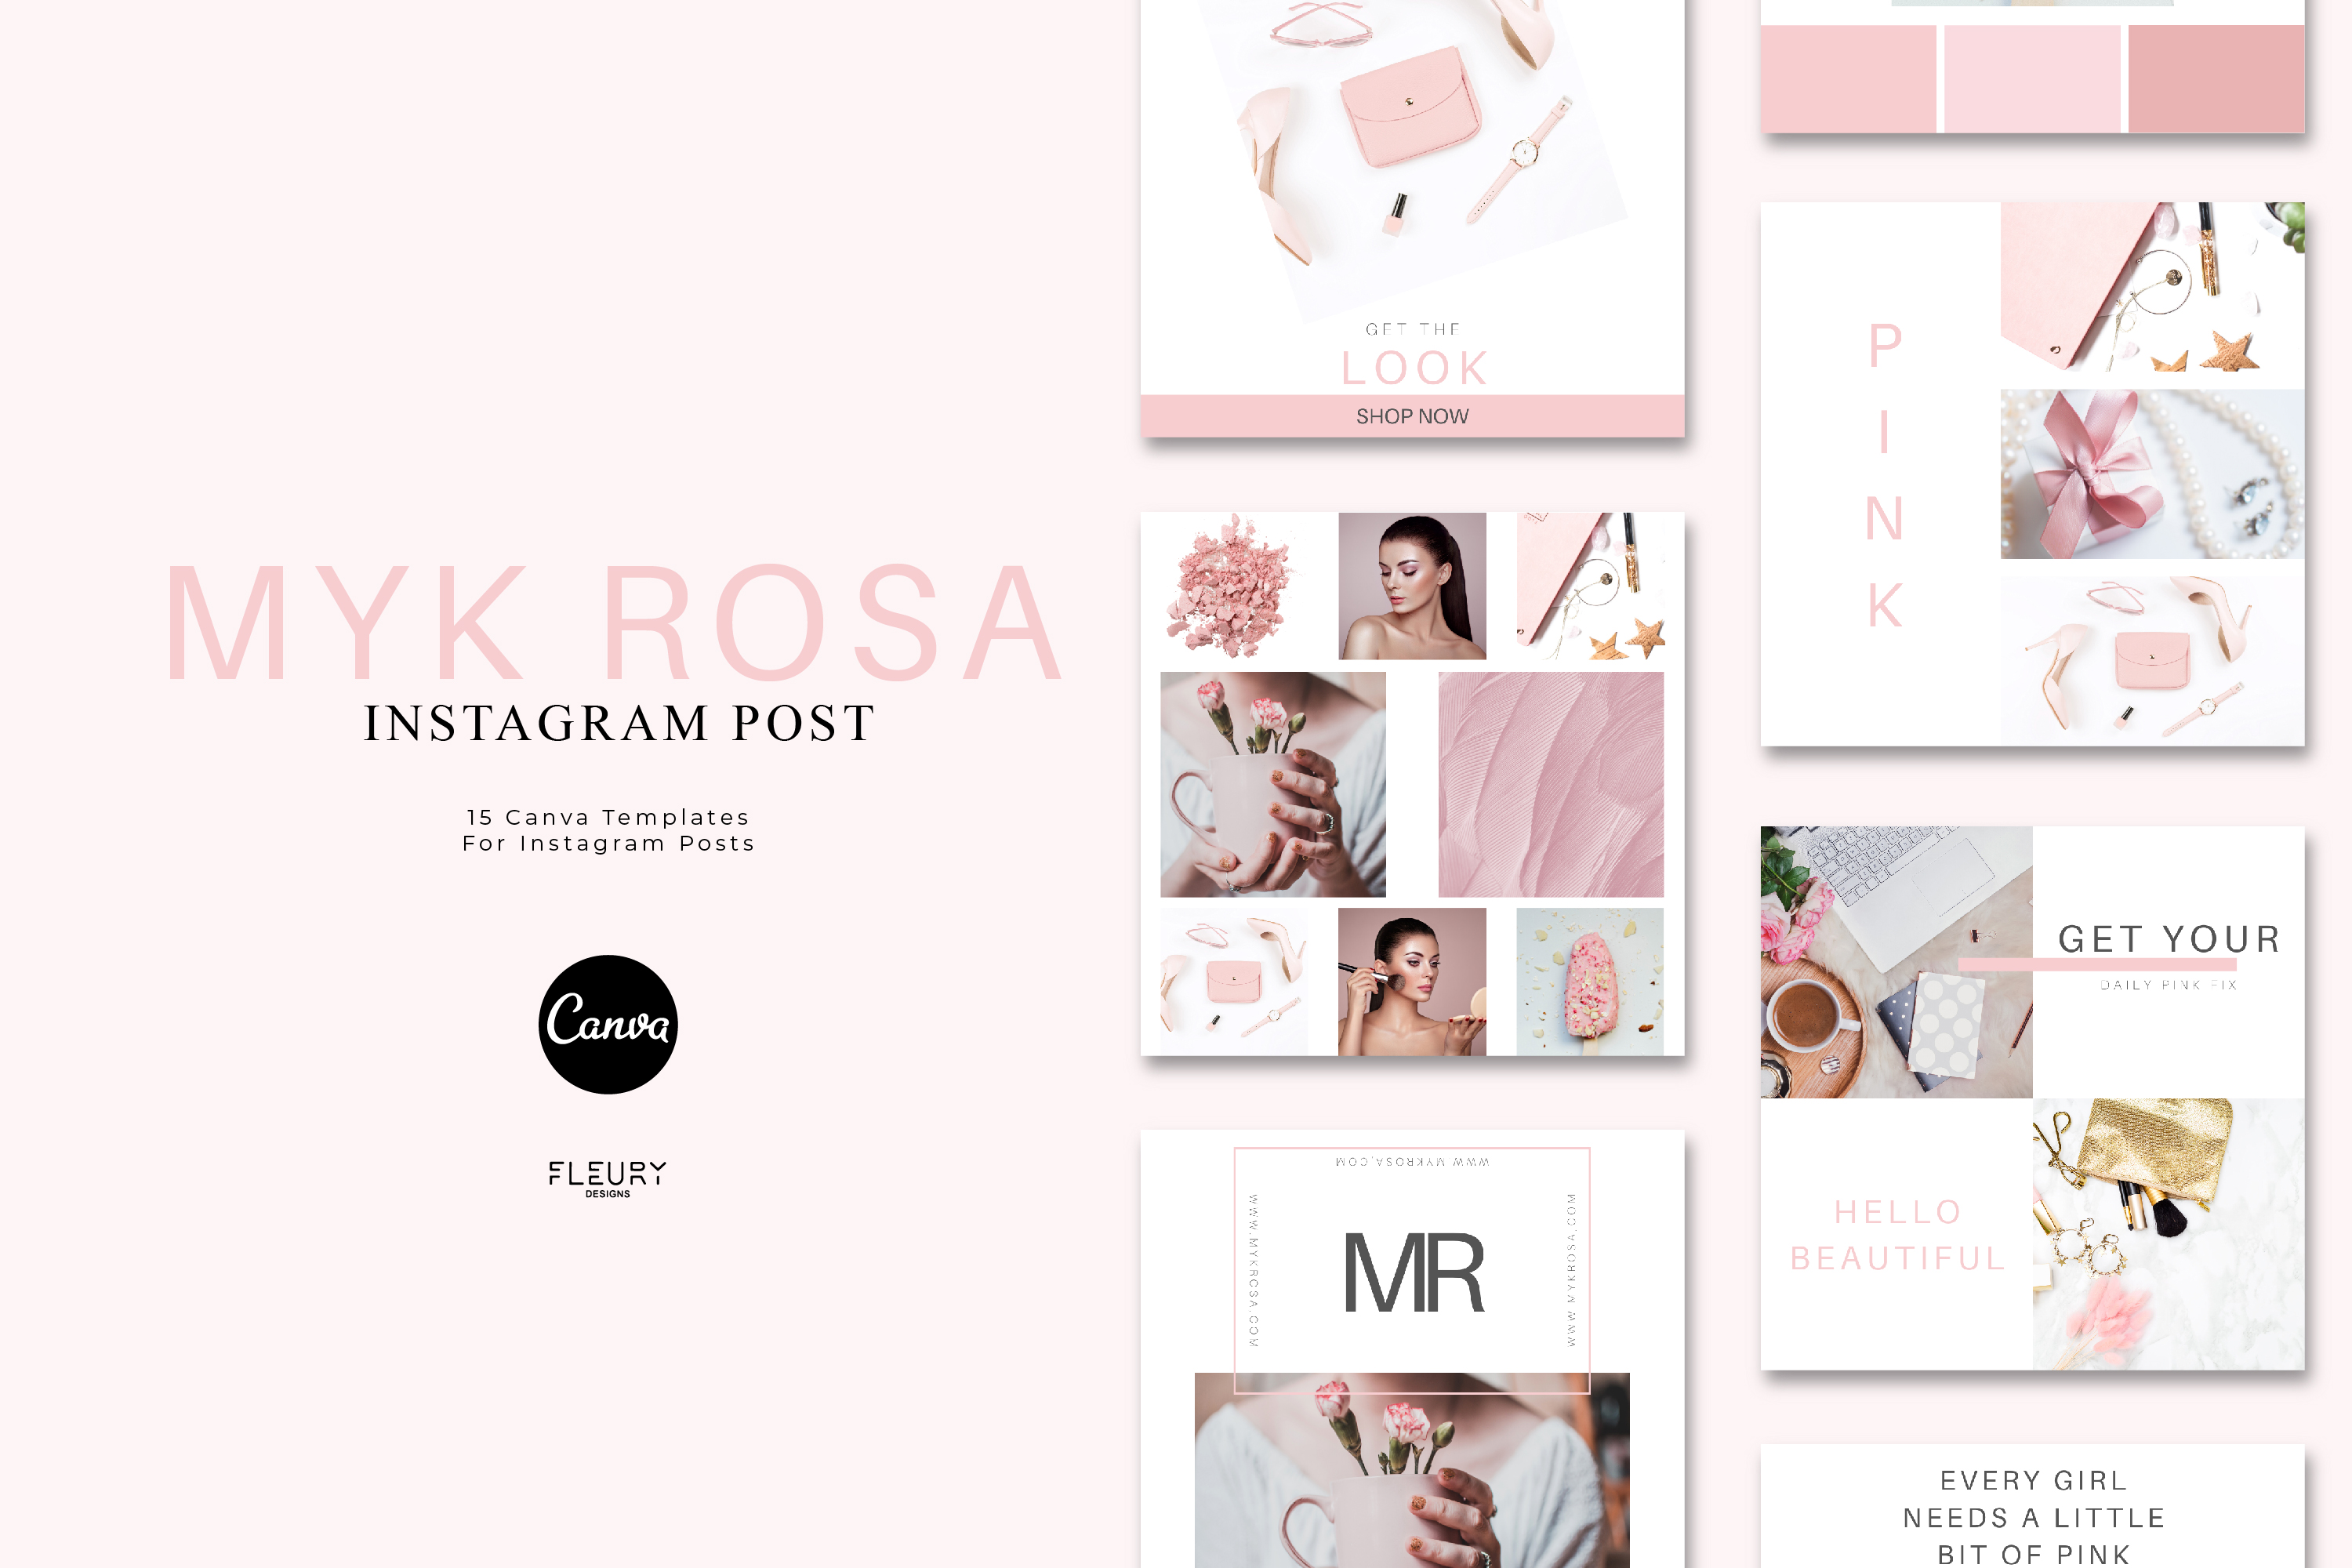 Instagram Posts Canva Template - Myk Rosa example image 1